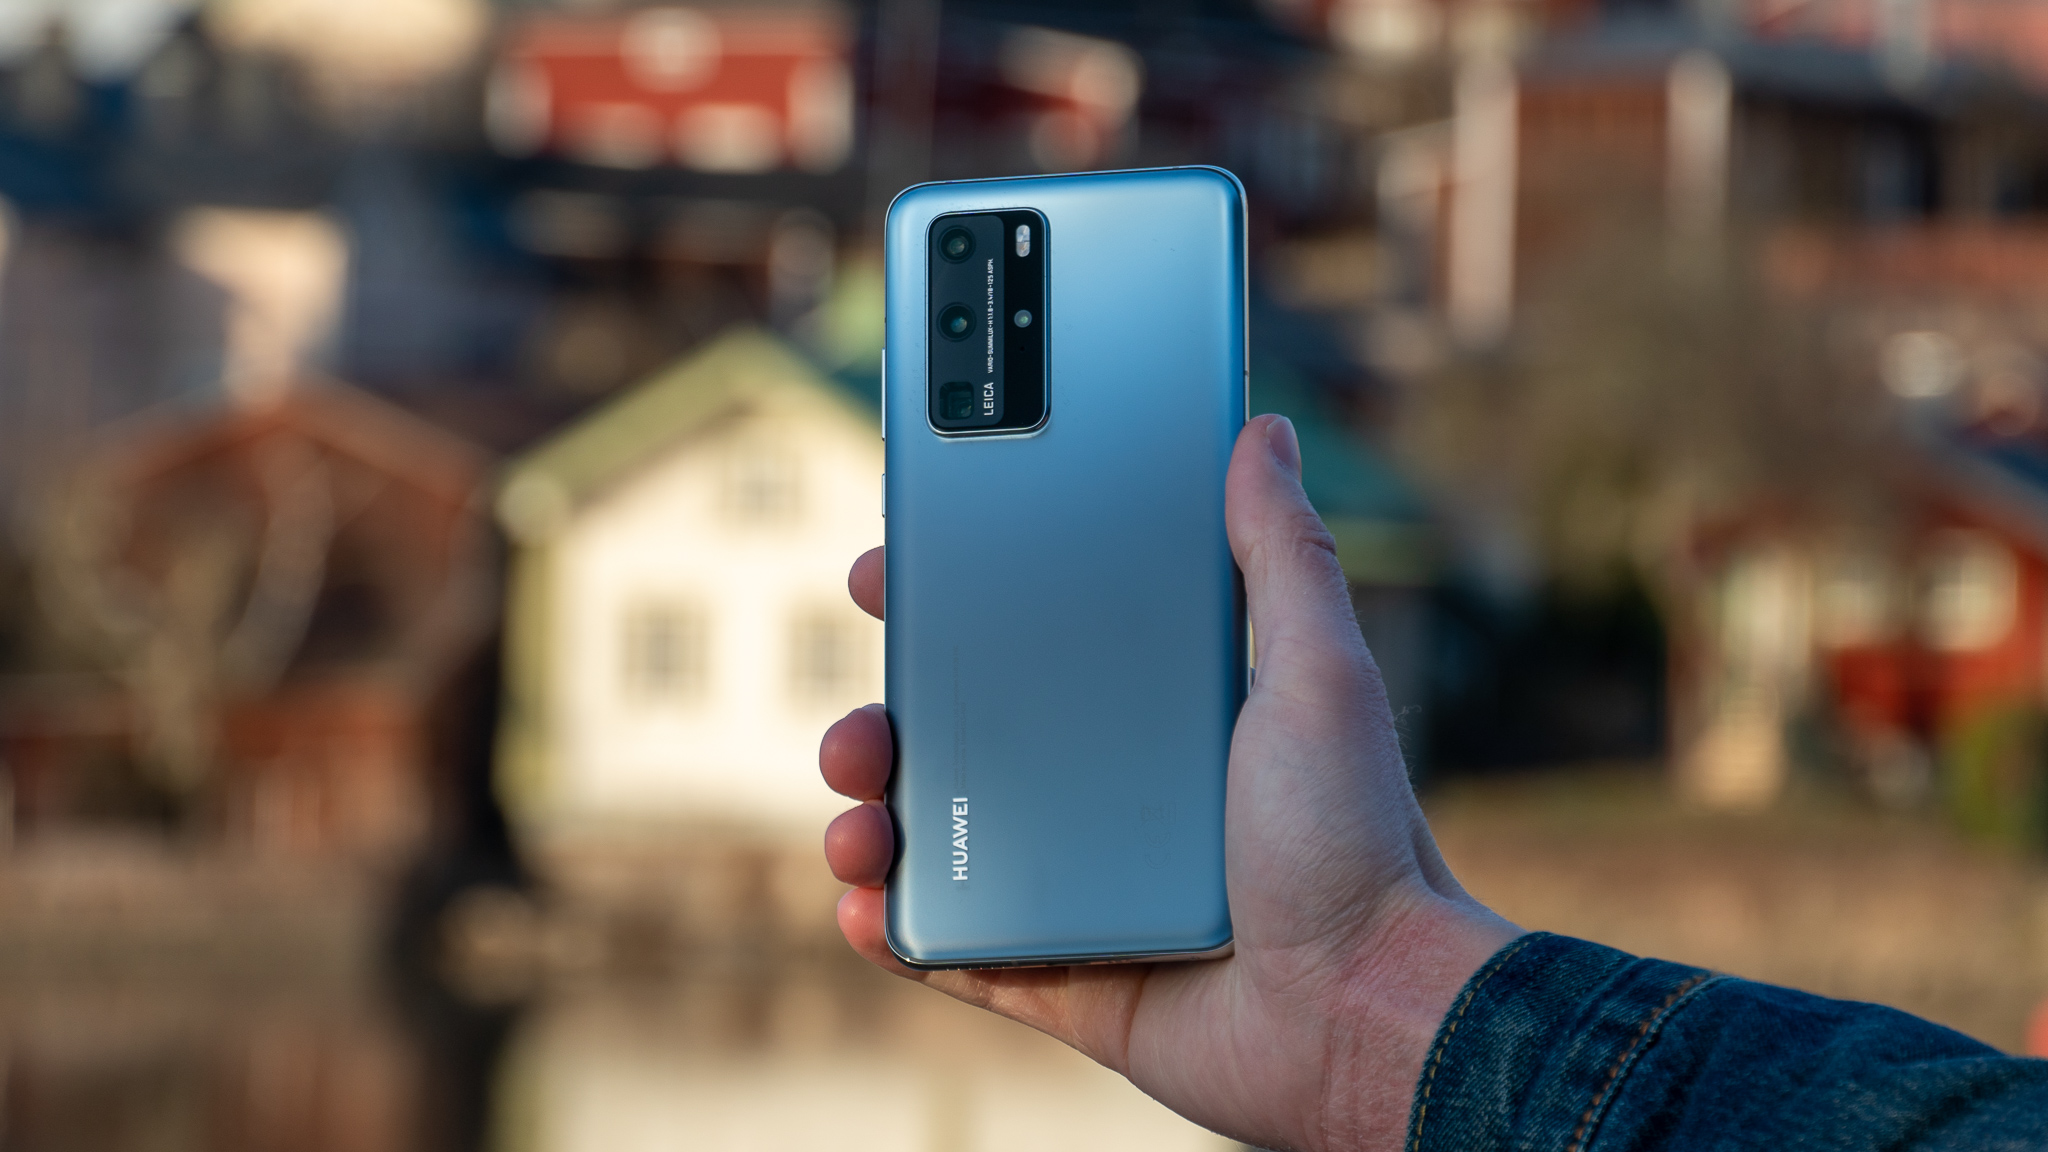 Huawei P40's availability won't be impacted by Covid-19, says CEO